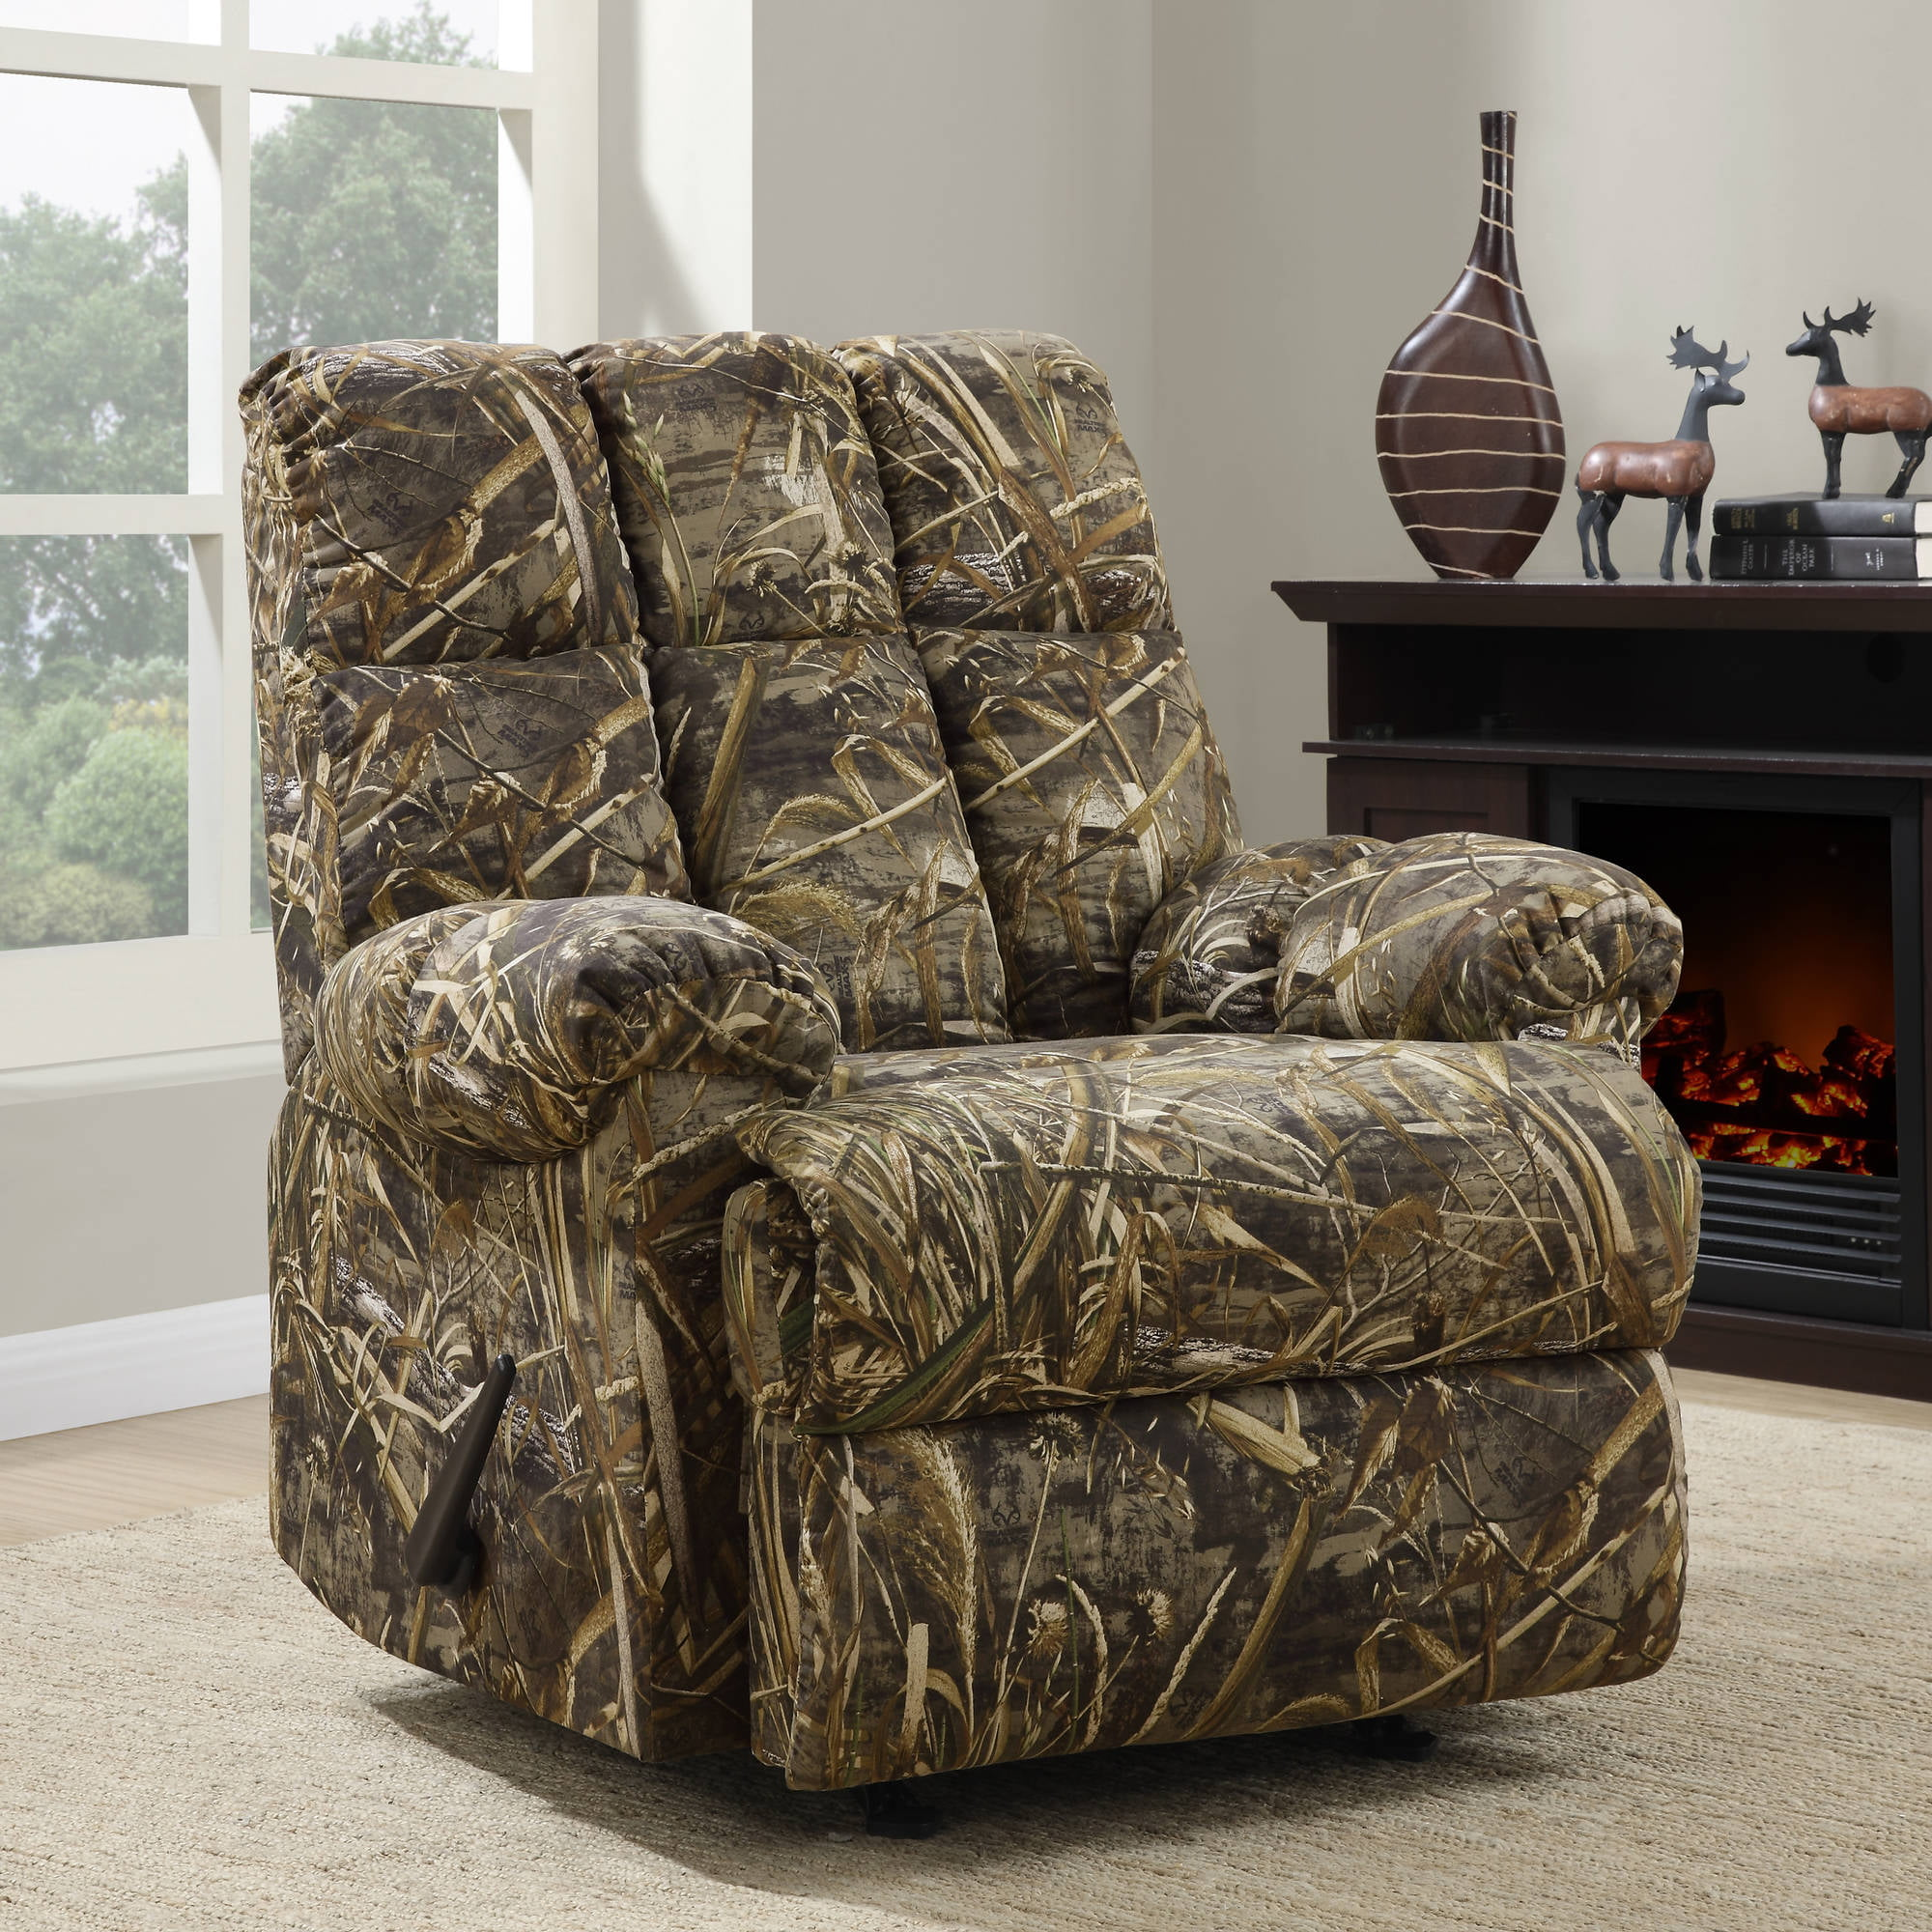 chair seating item and wall products number homestretch recliner tall extreme big saver xtreme